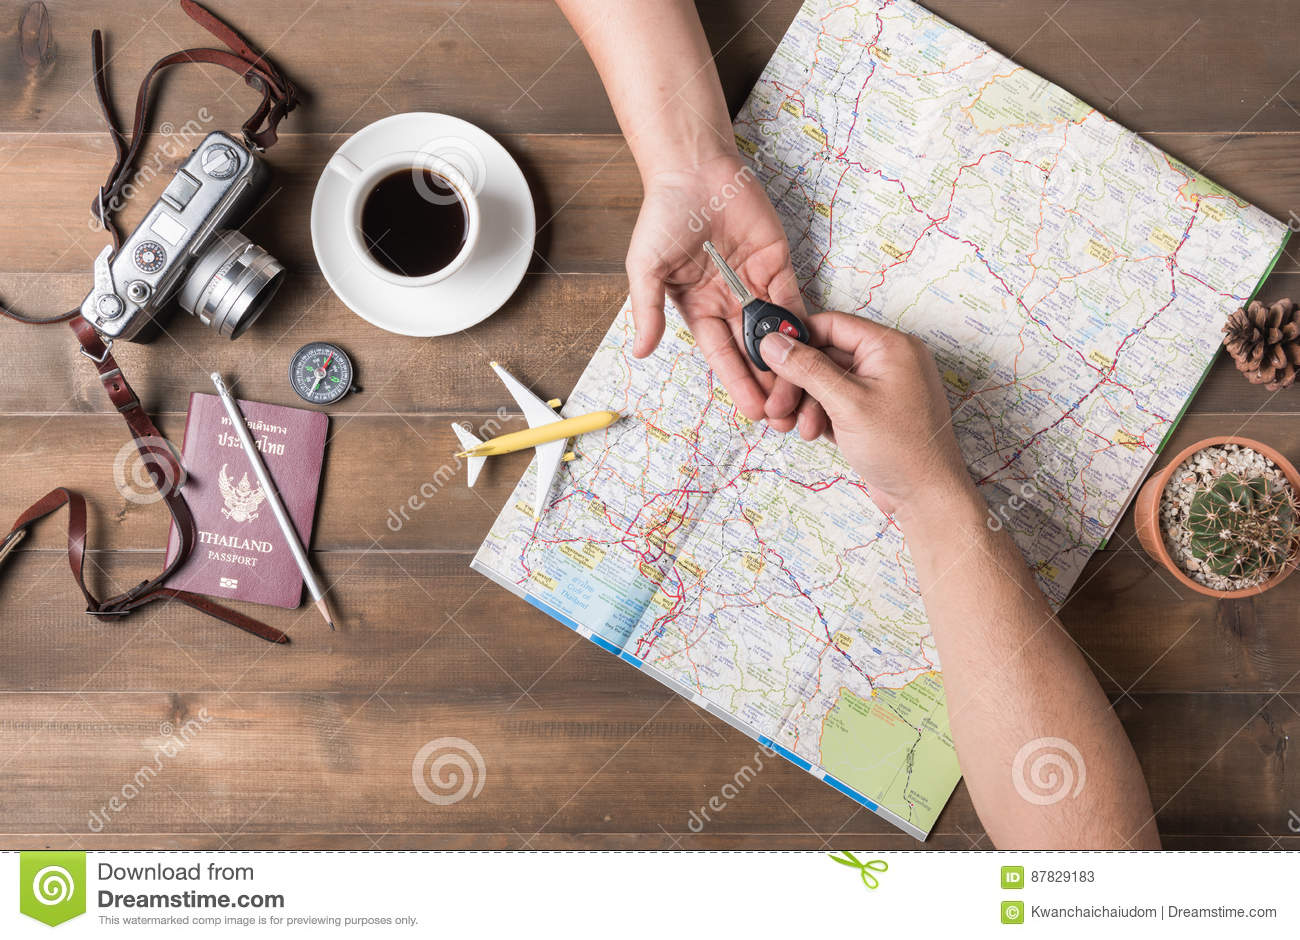 Male man giving car key to female hand on Thailand Map background